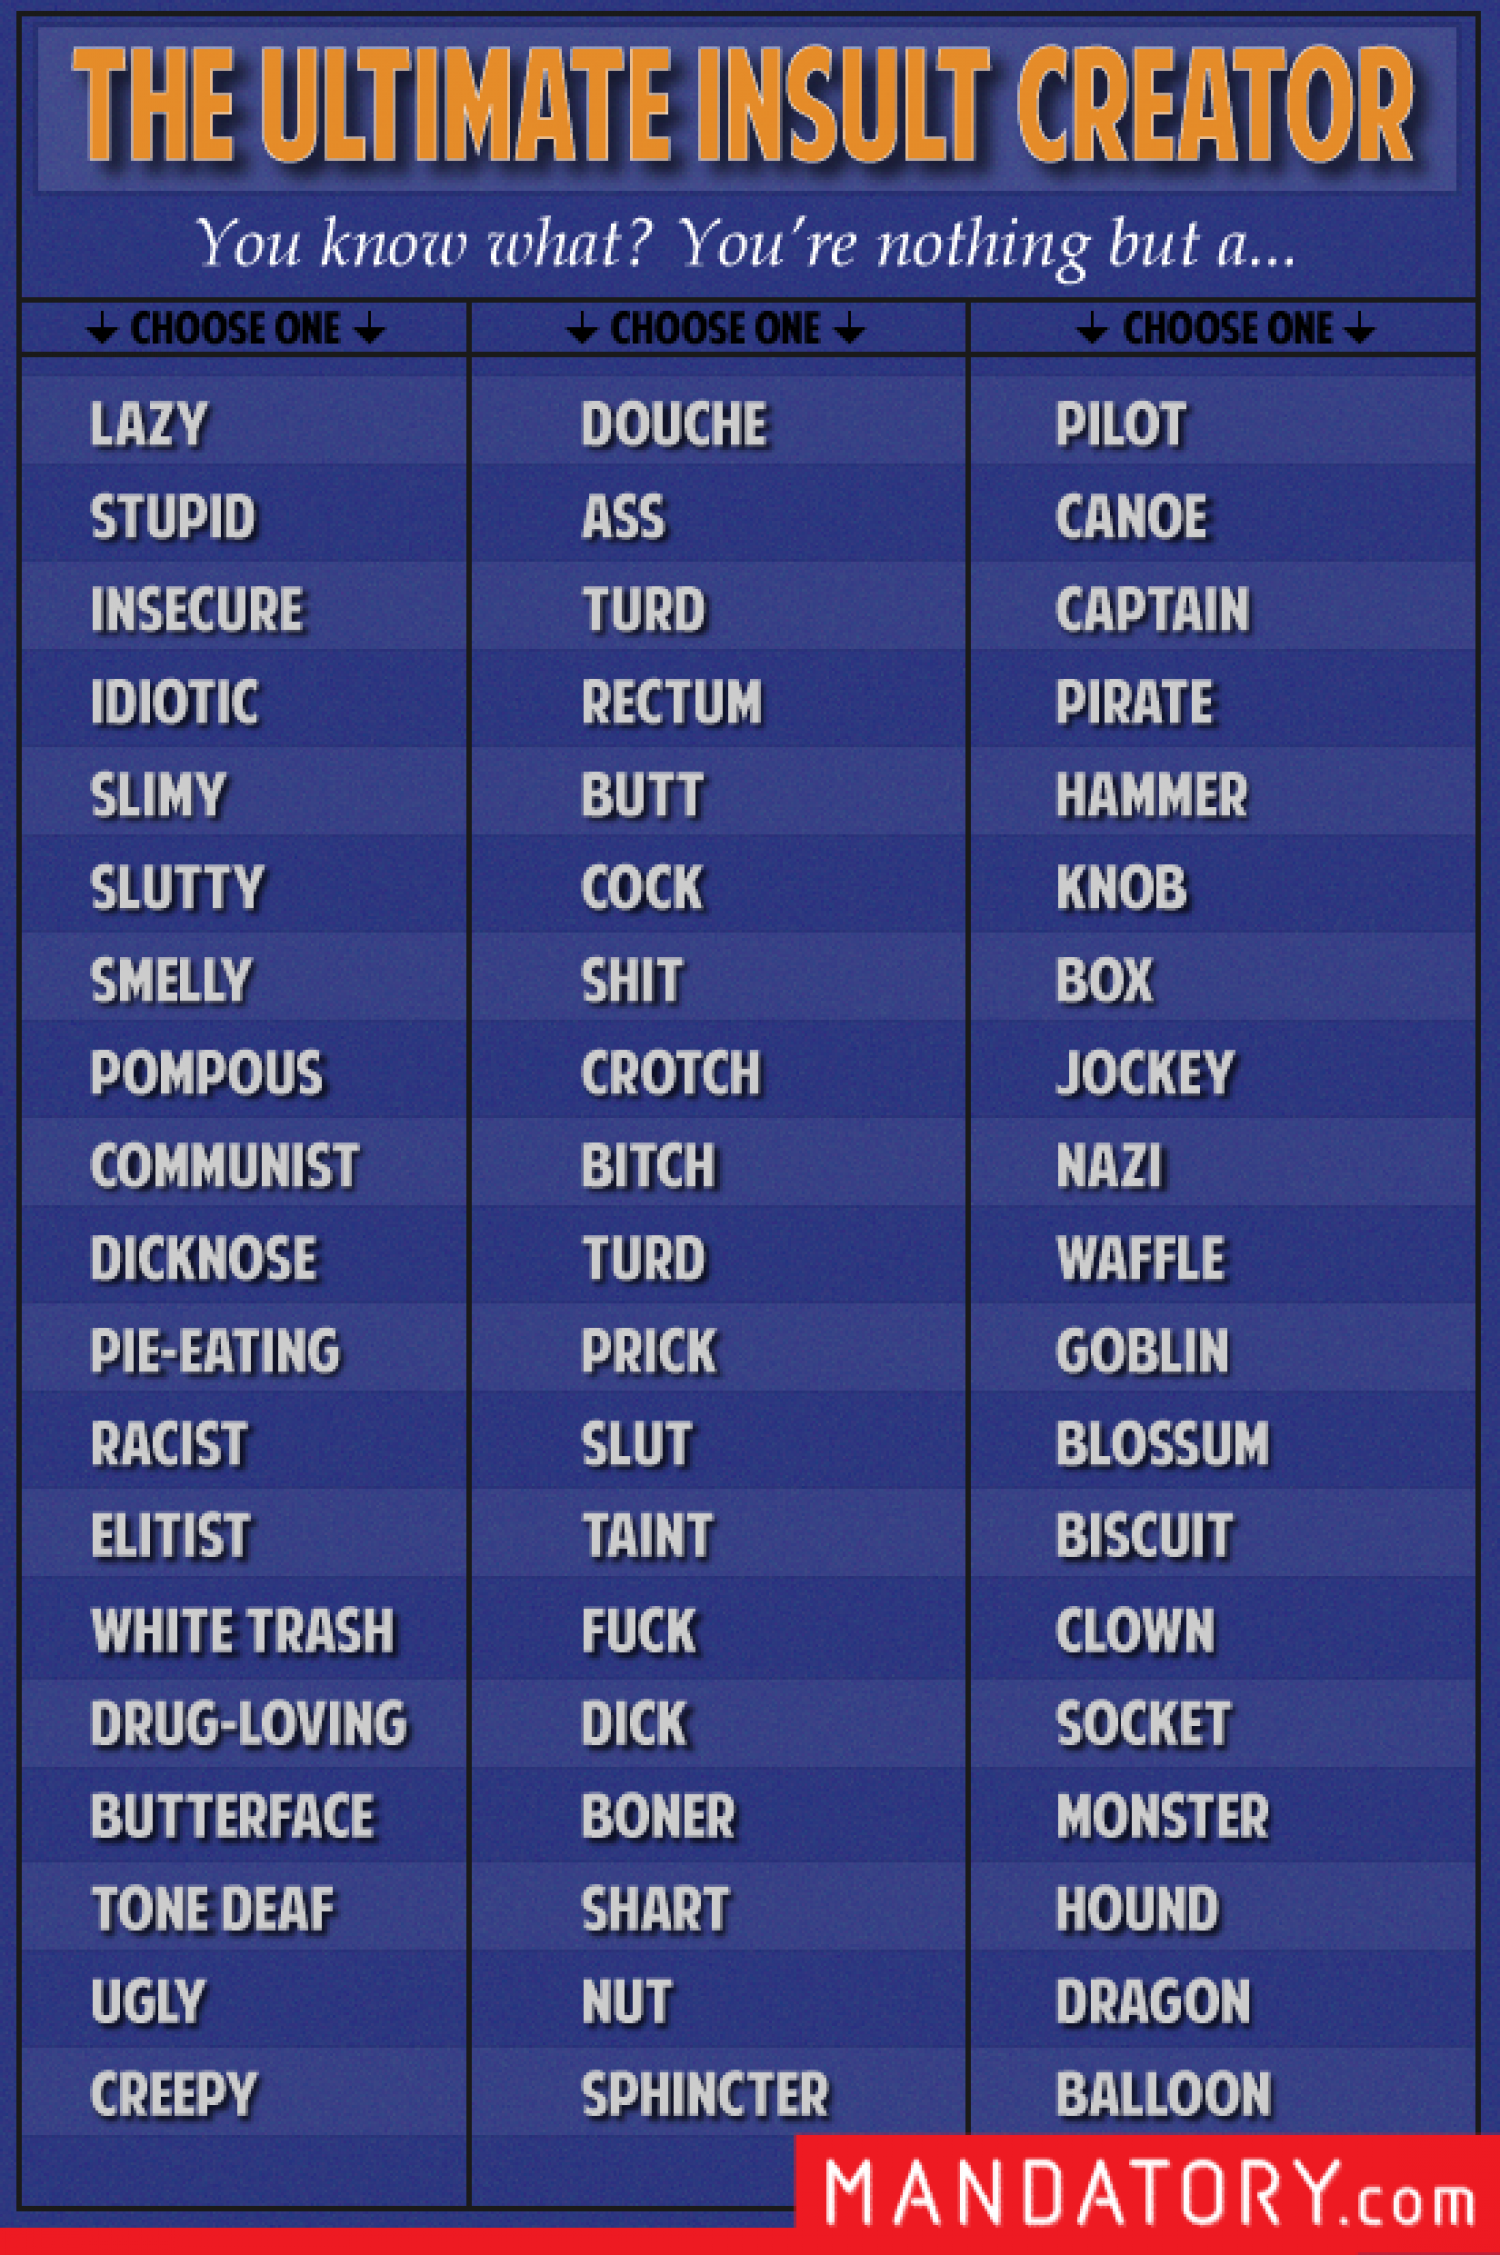 The Ultimate Insult Creator Infographic